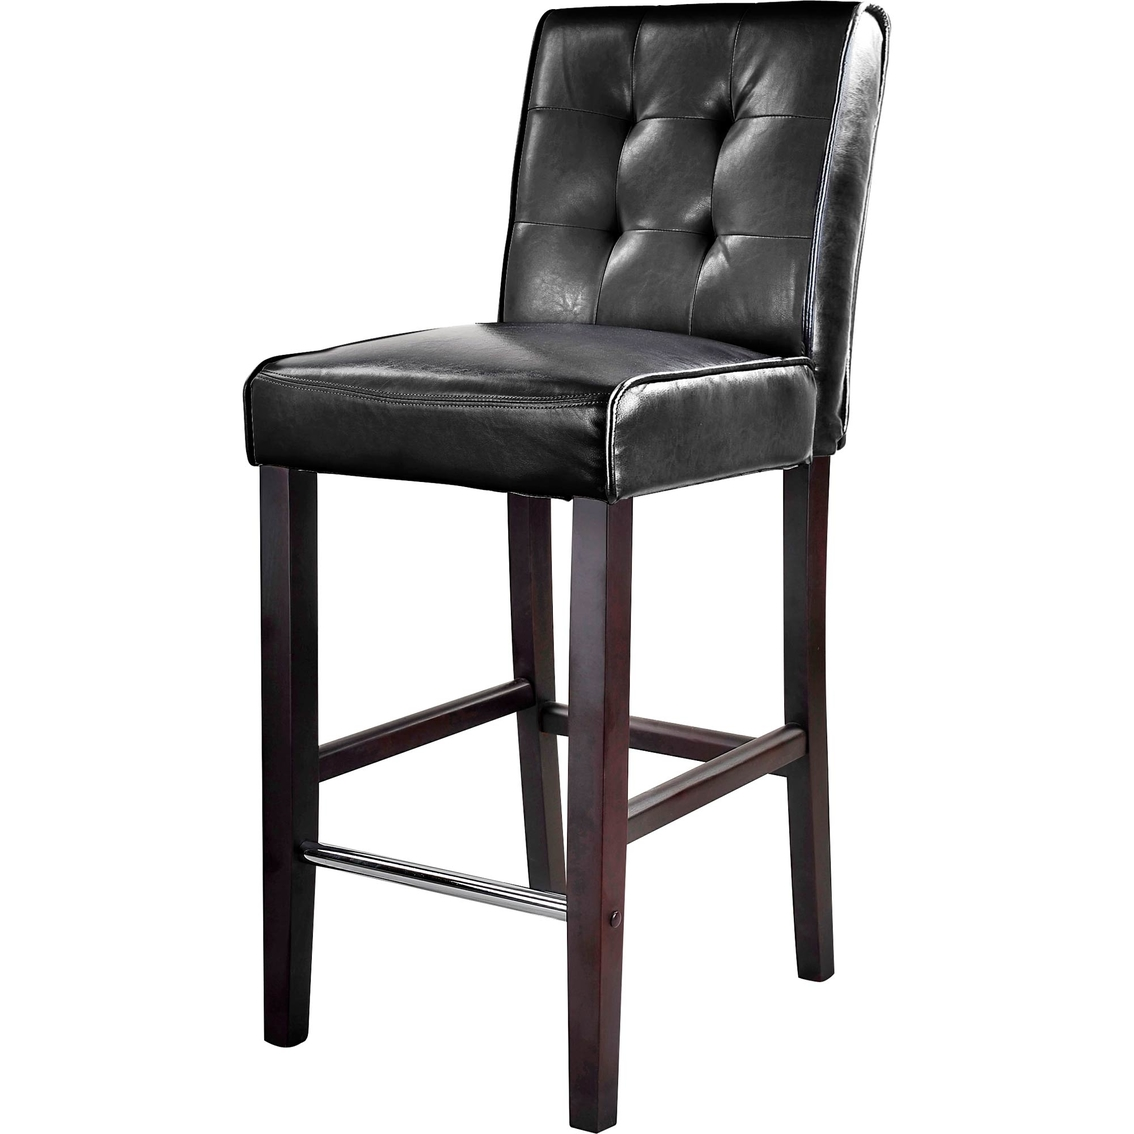 Cool Corliving Antonio Bar Height Stool In Tufted Bonded Leather Pdpeps Interior Chair Design Pdpepsorg